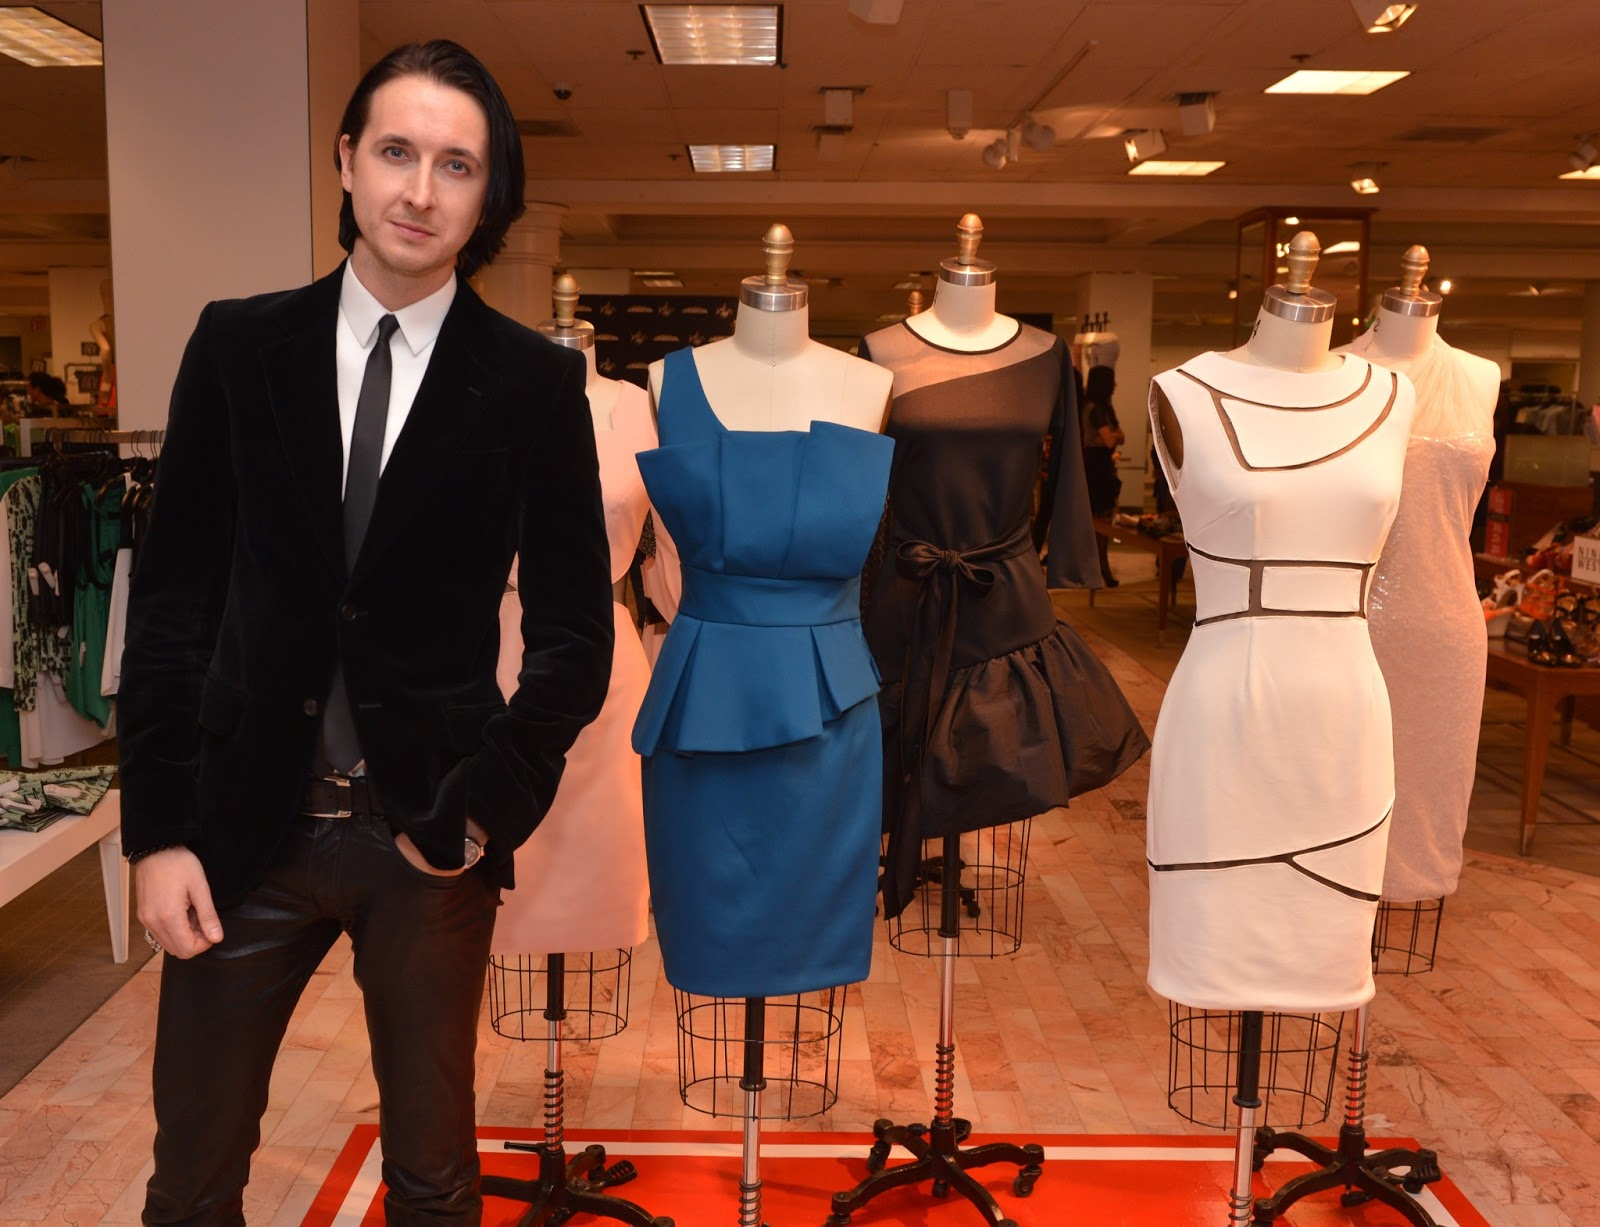 b8d158a5bf0 Dmitry Sholokhov at the launch of his debut dress collection at Lord    Taylor